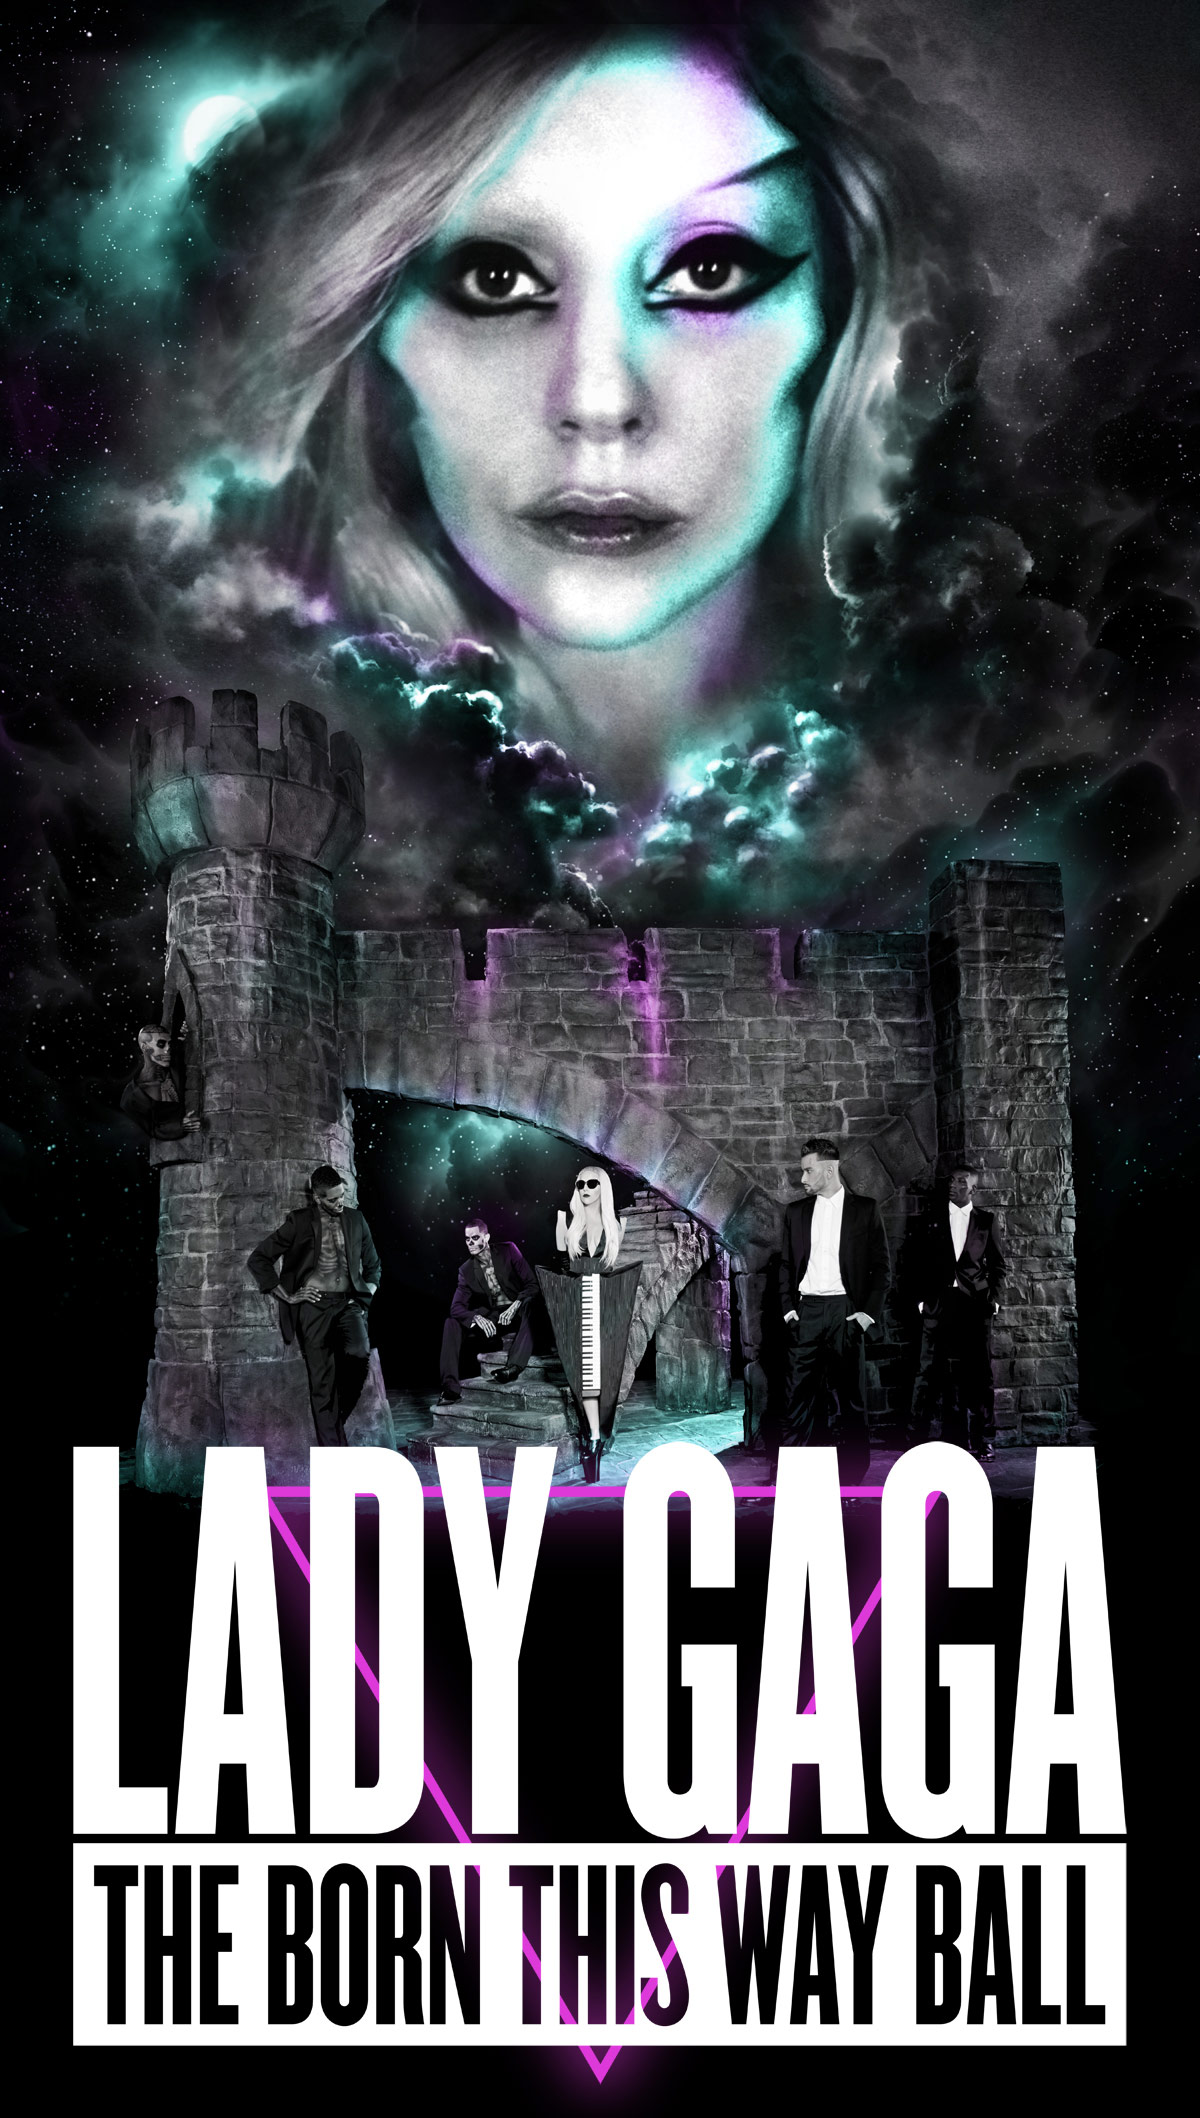 lady gaga announces born this way ball tour dates reveals poster and stage set design sketch. Black Bedroom Furniture Sets. Home Design Ideas